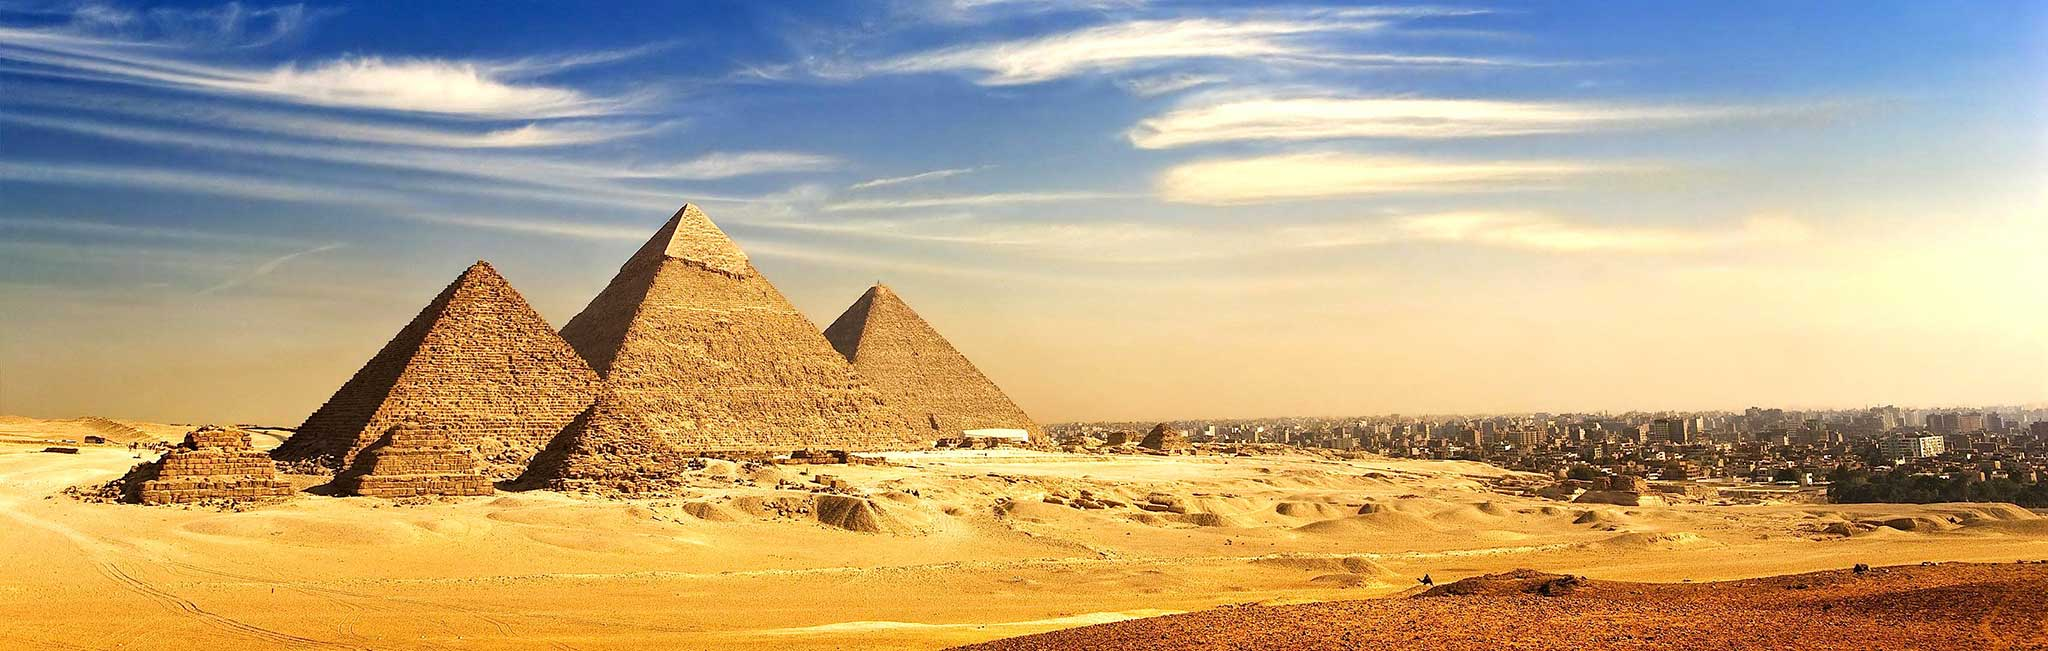 Egypt Tour - The Great Pyramids of Giza